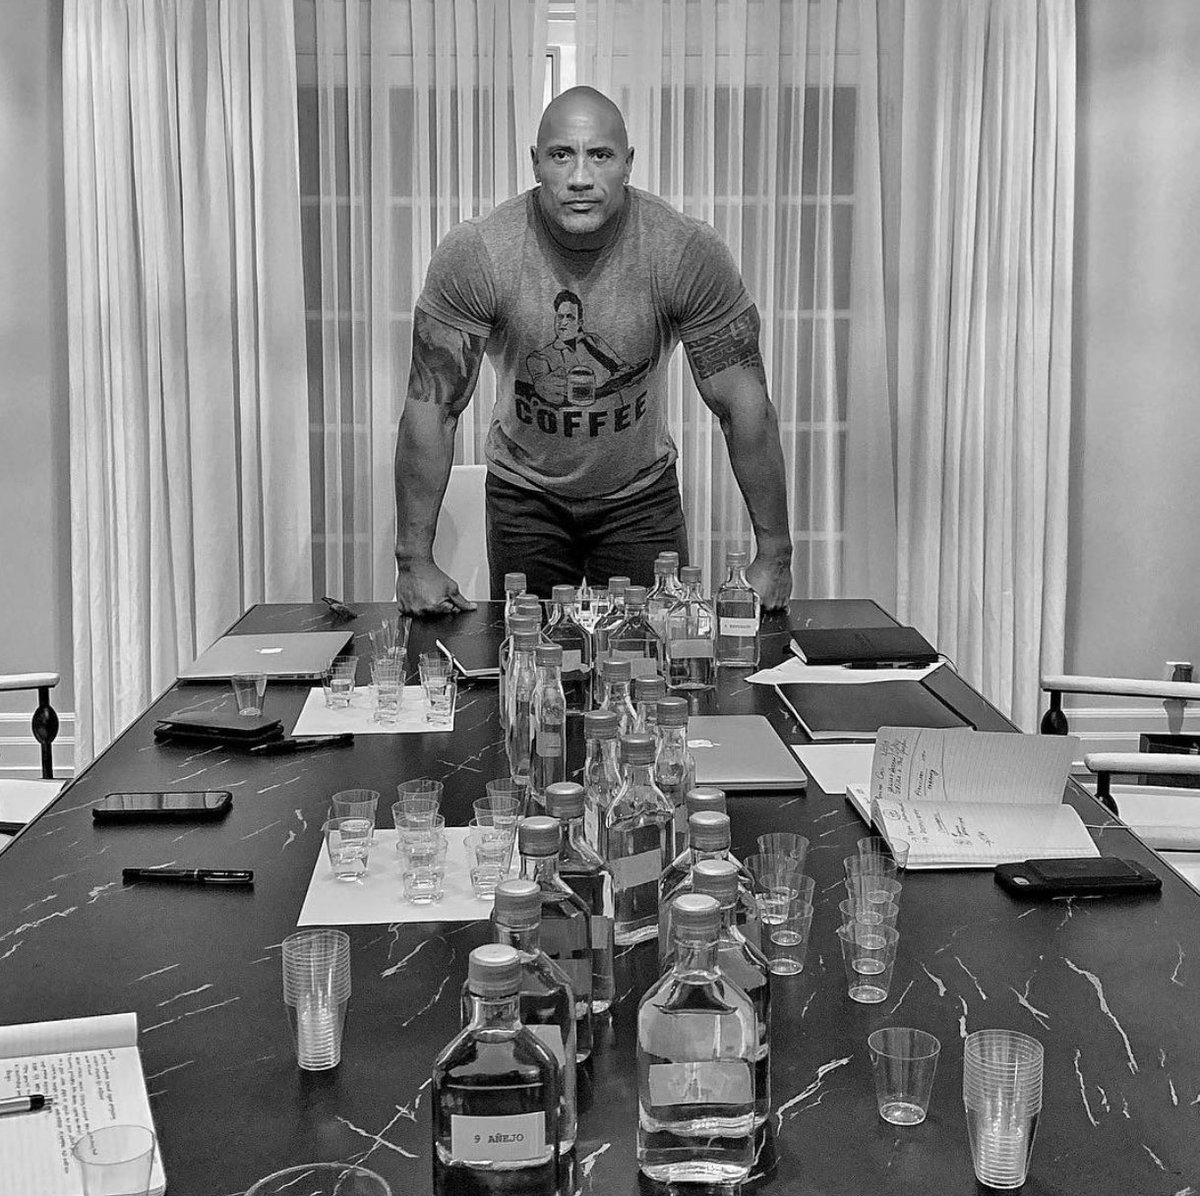 There's a lifetime of experiences that has come down to this moment for @therock. Unexpected, heartbreaking, heartwarming, humbling and iconic. A life that has been audience first since he was 18. Congratulations my friend. Let's have a drink.  #tequila #comingsoon 🥃 #CoFounder